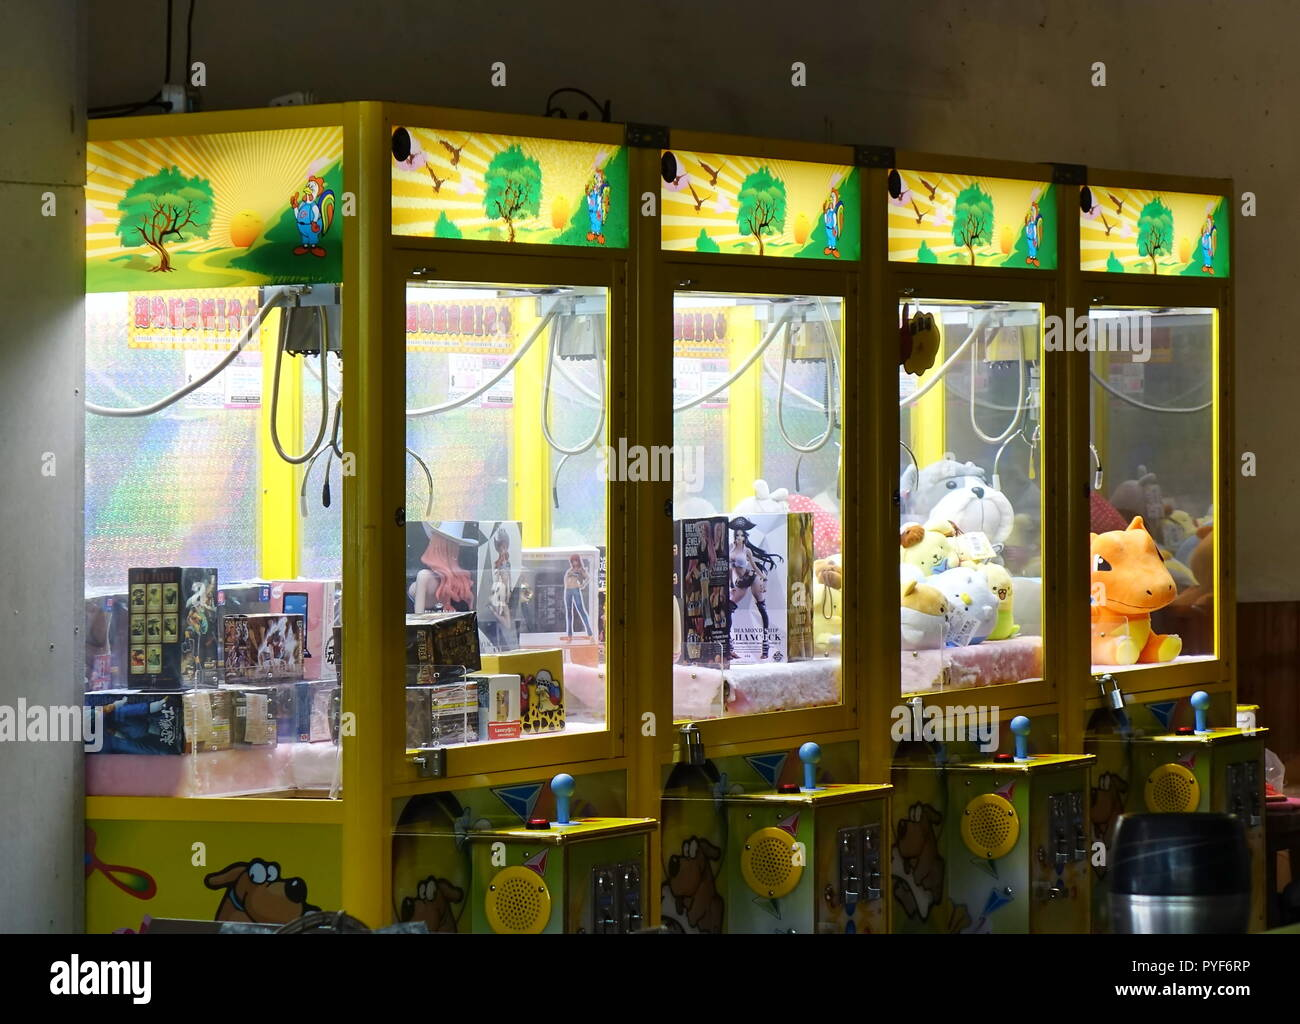 KAOHSIUNG, TAIWAN -- OCTOBER 19, 2018: Claw crane game machines have become the latest fad in Taiwan, occupying many empty store fronts. - Stock Image